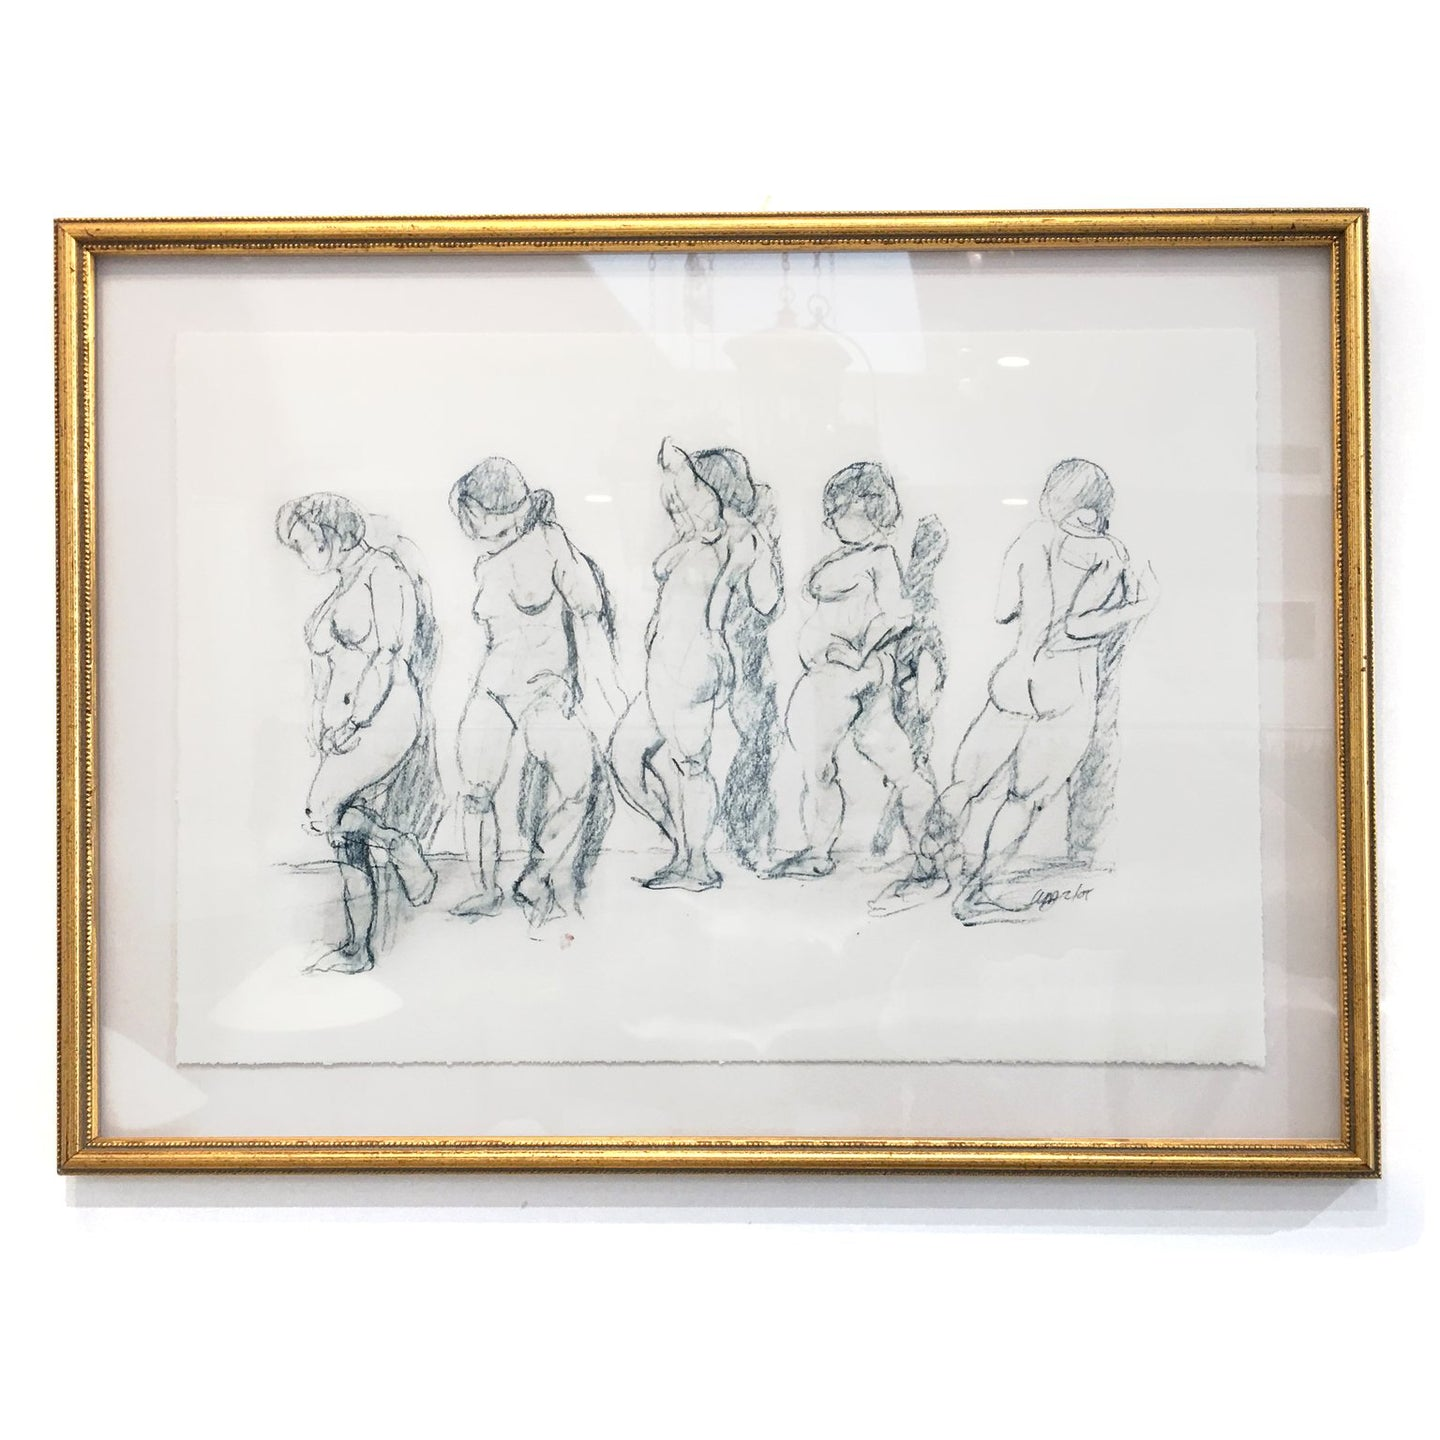 FRAMED DRAWING BY STEVE GIANNETTI